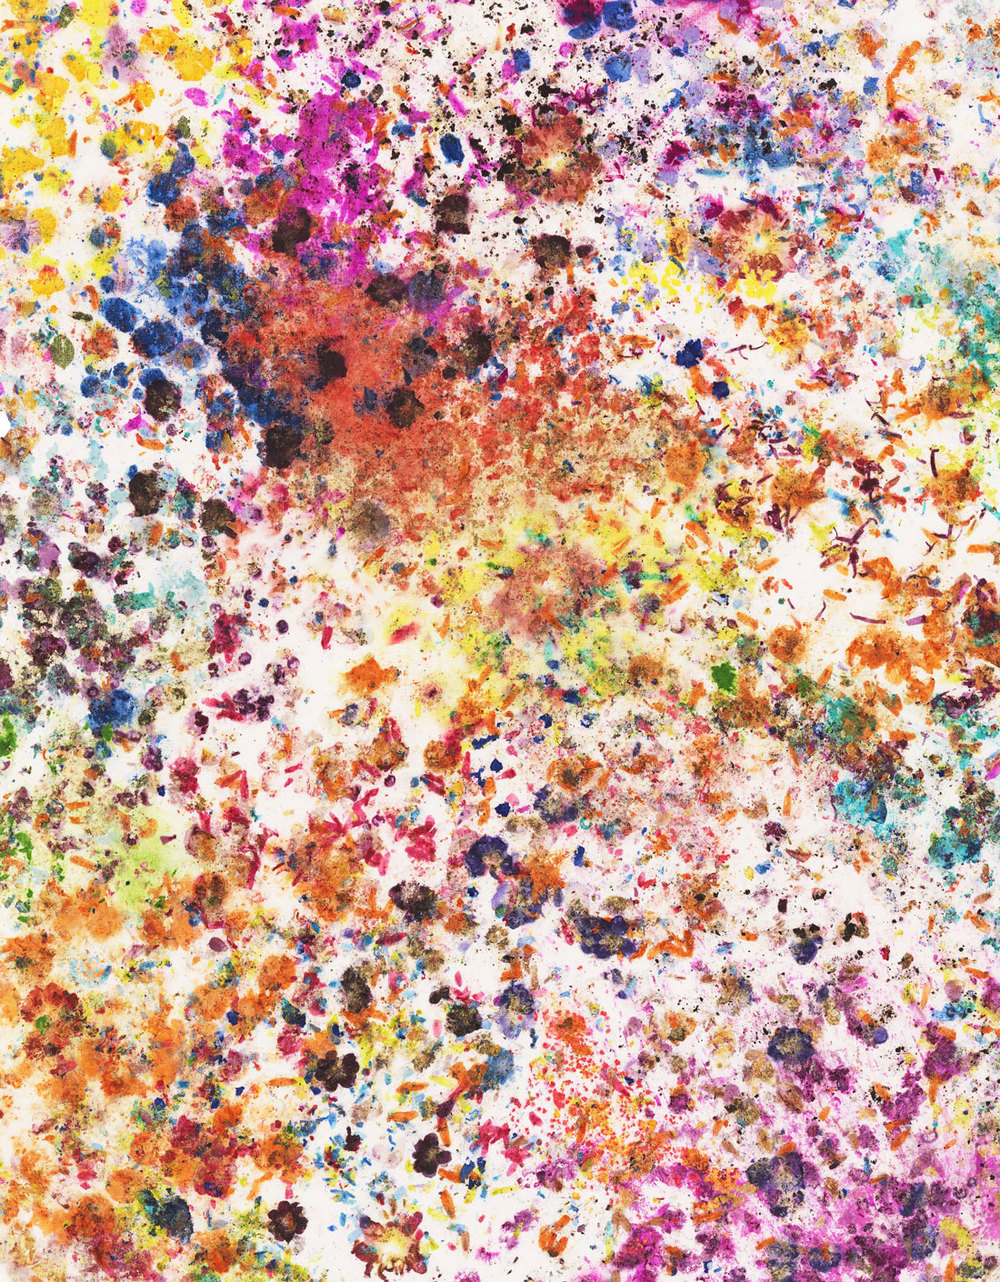 Dan Colen -Orgasm Addict, 2014  Flowers on bleached Belgian linen 63.75 x 49.75 in (161.93 x 126.37 cm)  Estimate  $125,000 - $140,000